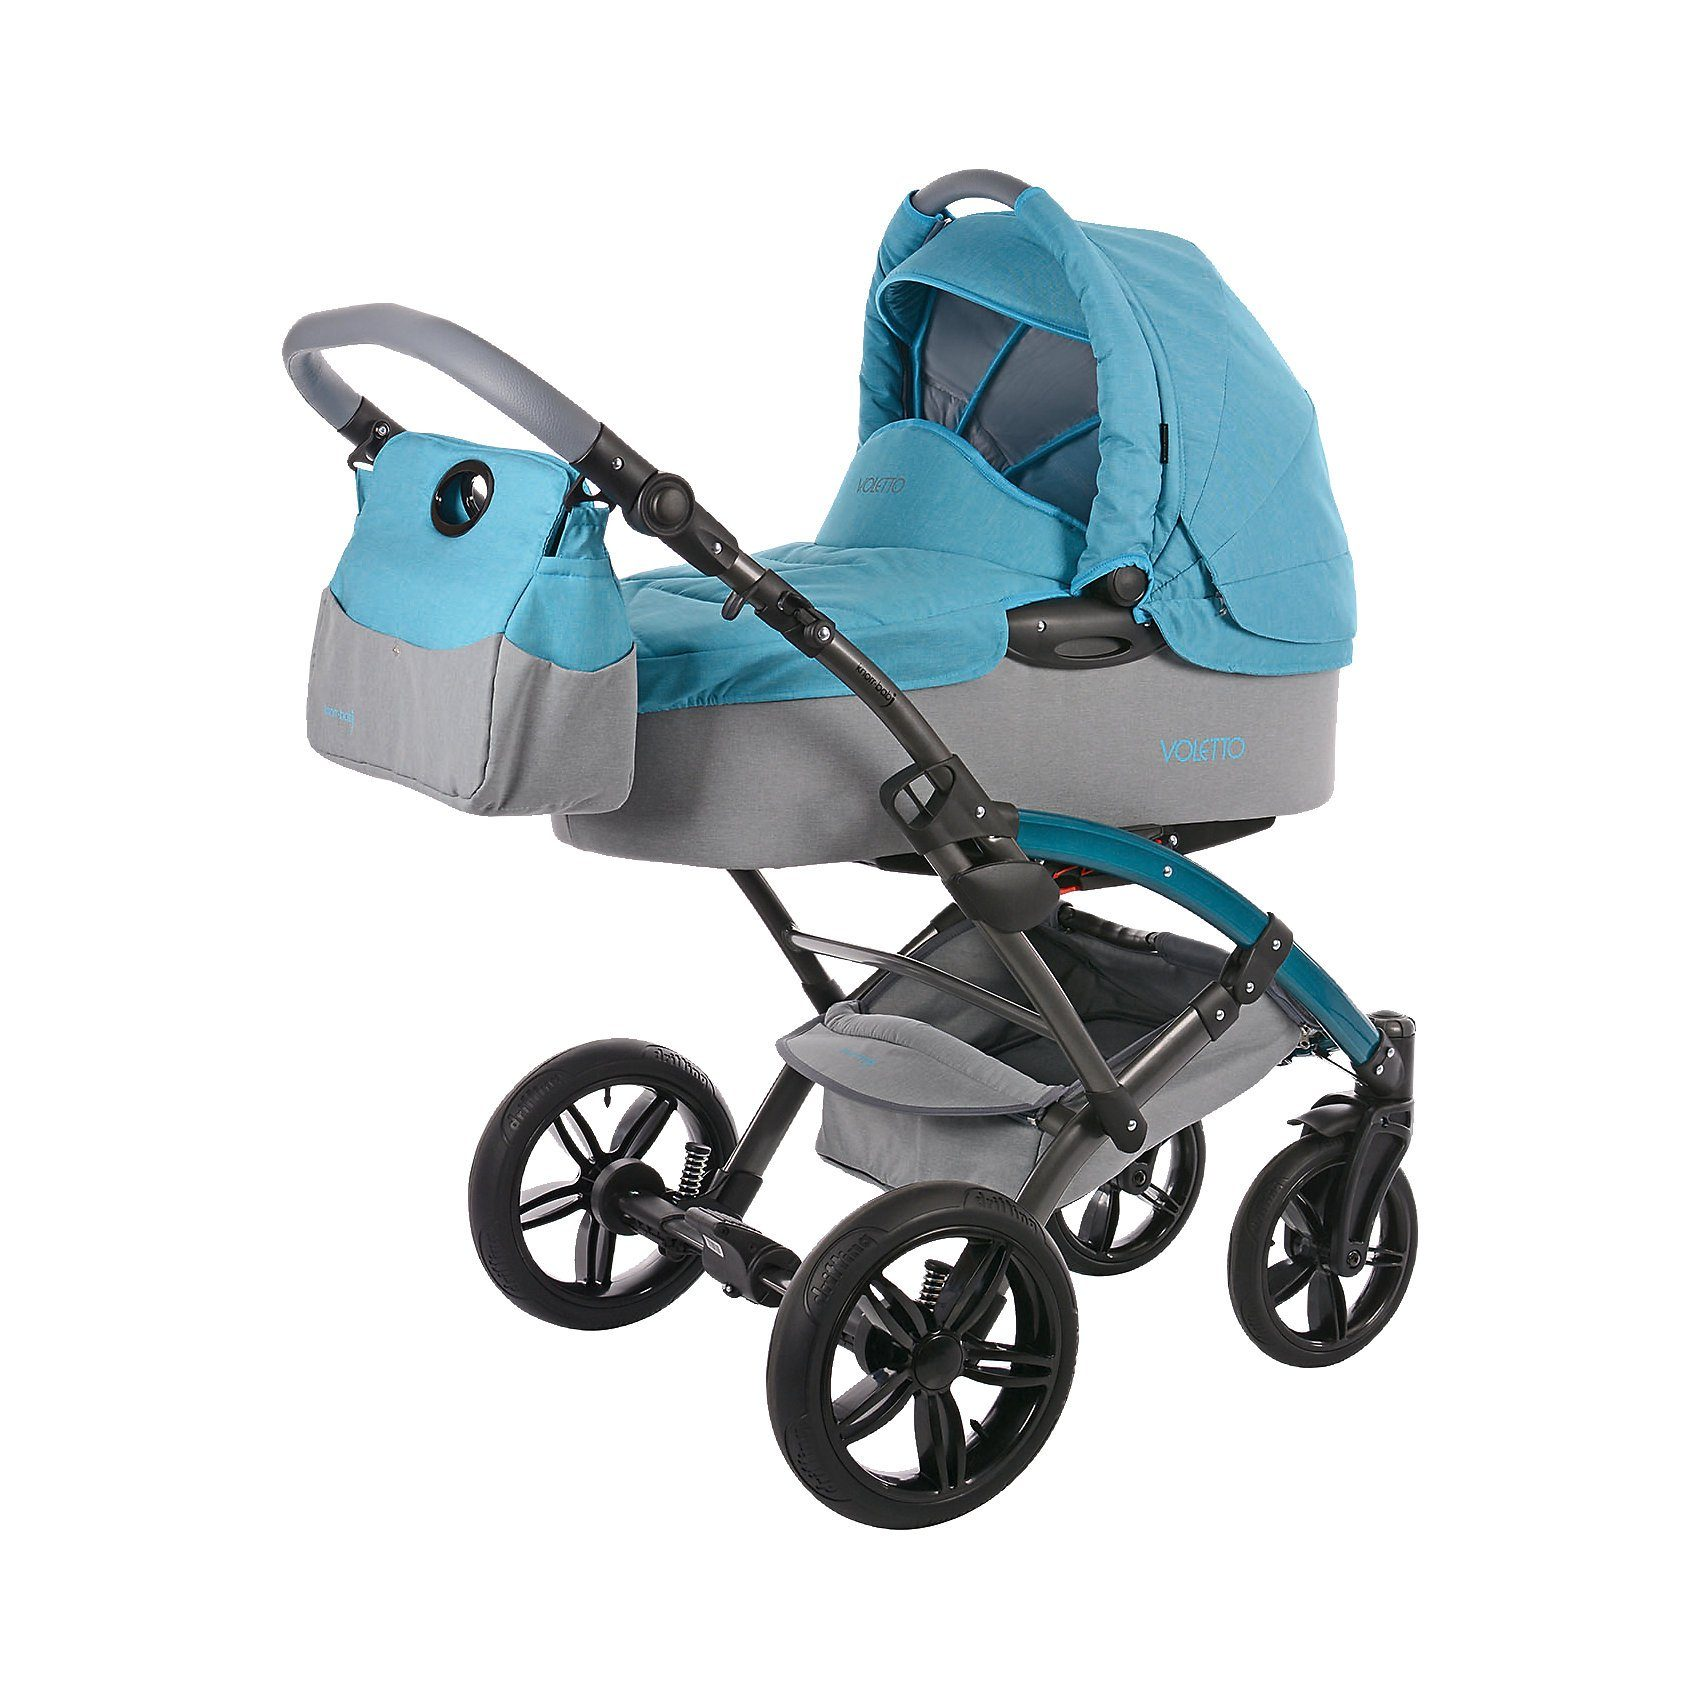 knorr-baby Kombi Kinderwagen Voletto Happy Colour mit Wickeltasche, bla